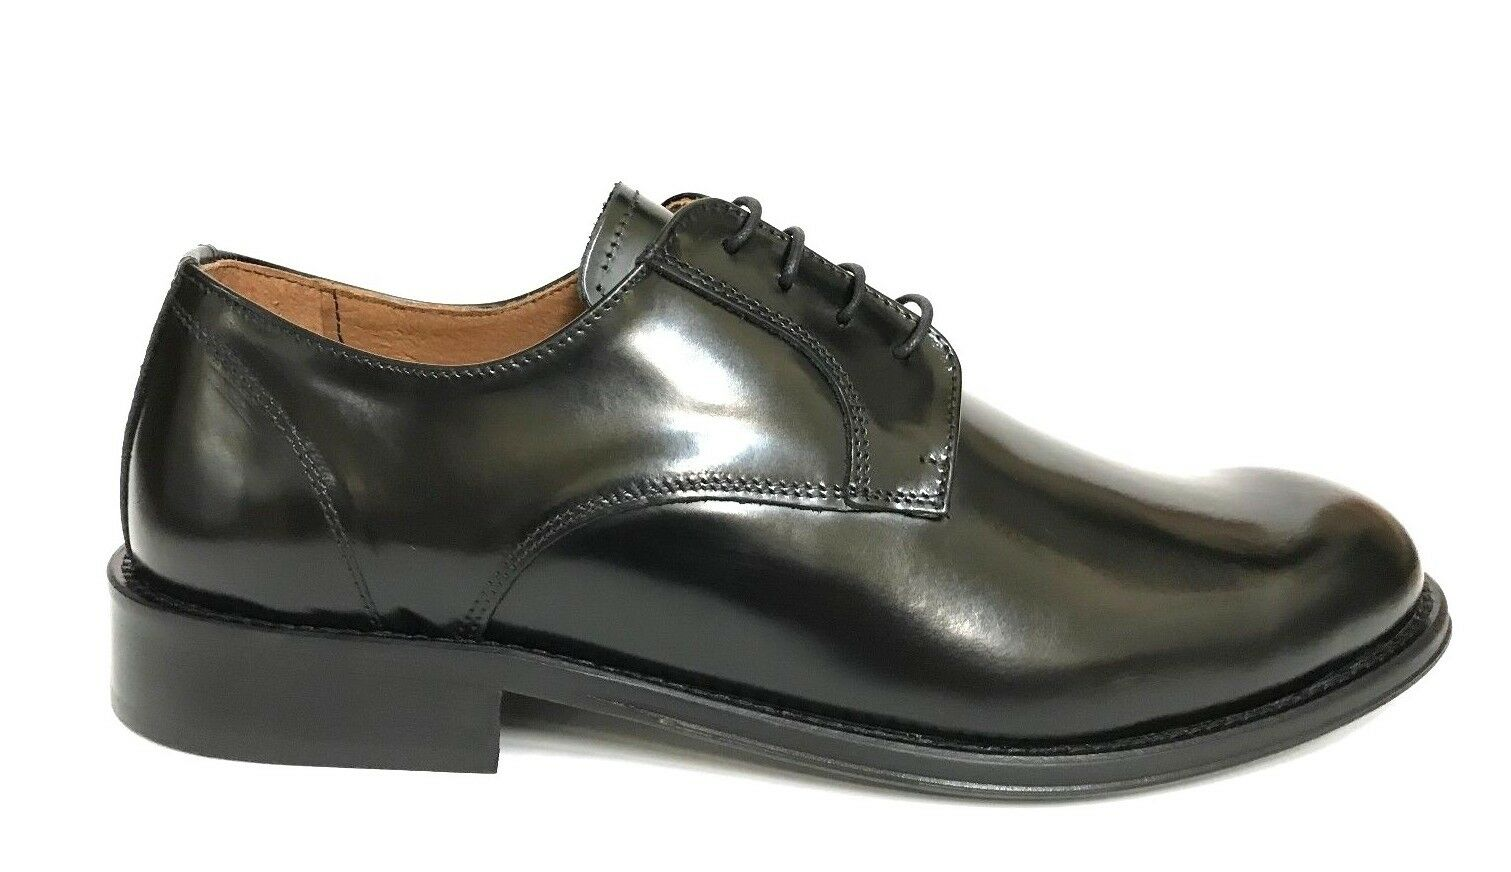 shoes men WEENCHESTER SHOES STRINGATE ELEGANTI 536 black P EE 2018 SCONTO 30%